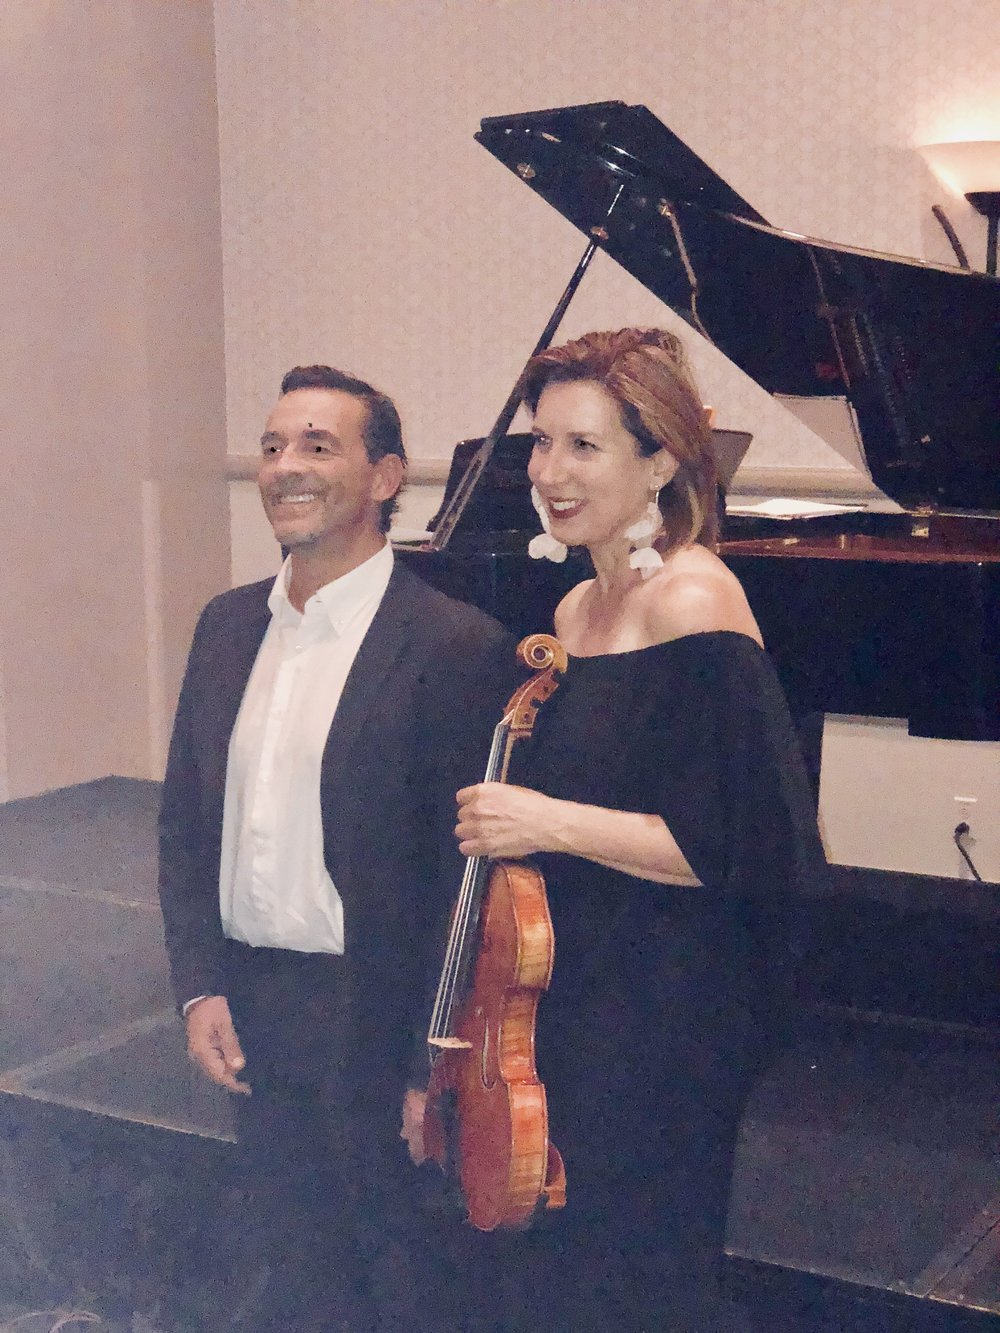 Florida - On July 21, 2018, Kate was invited to be the featured guest artist at the 2018 Delta Omicron International Convention in Orlando, Florida.Pictured are Kate and collaborator, pianist Ferruccio Amelotti (Milan, Italy).